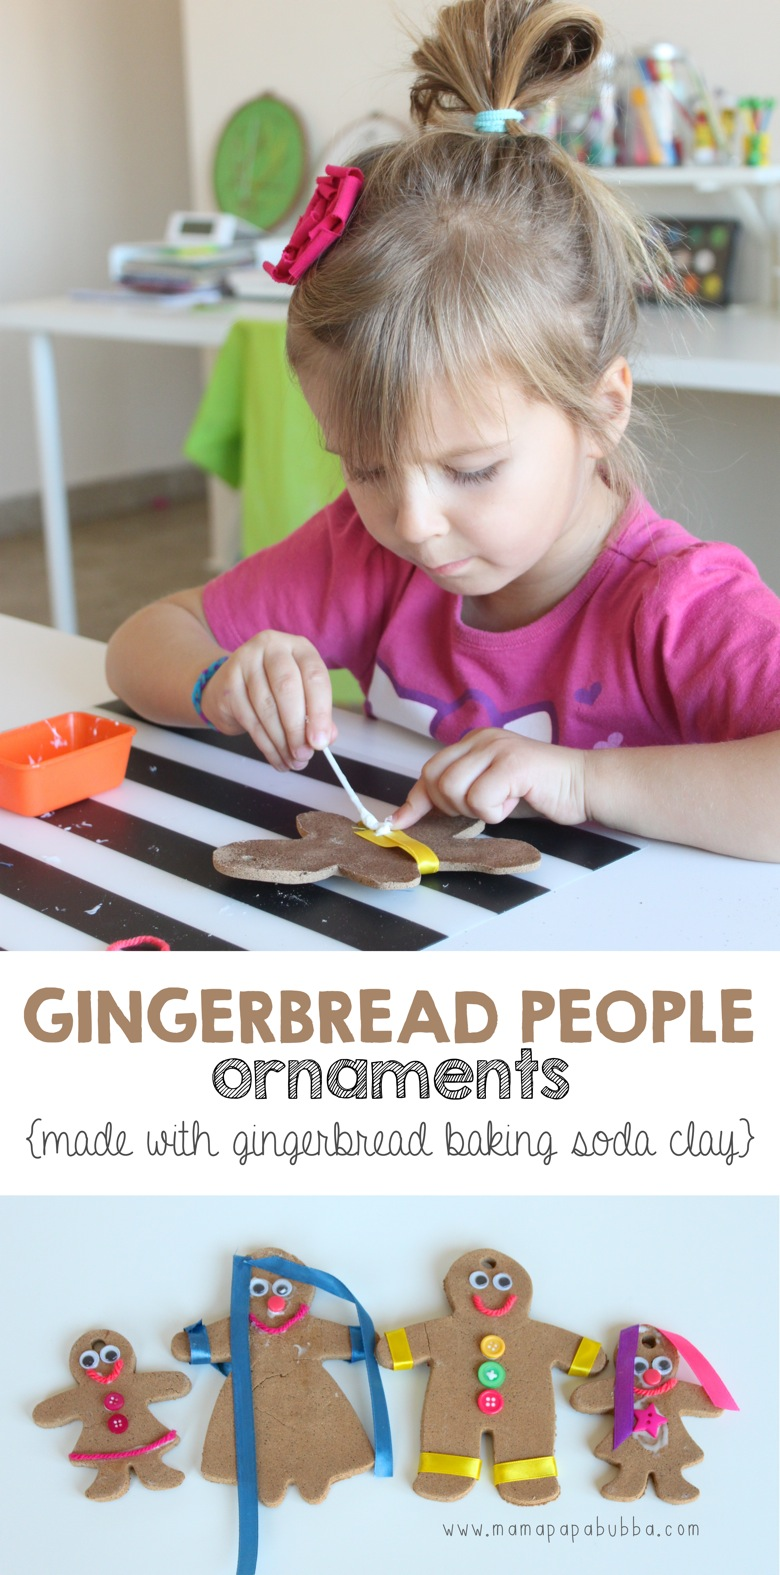 Gingerbread People Ornaments | Mama Papa Bubba